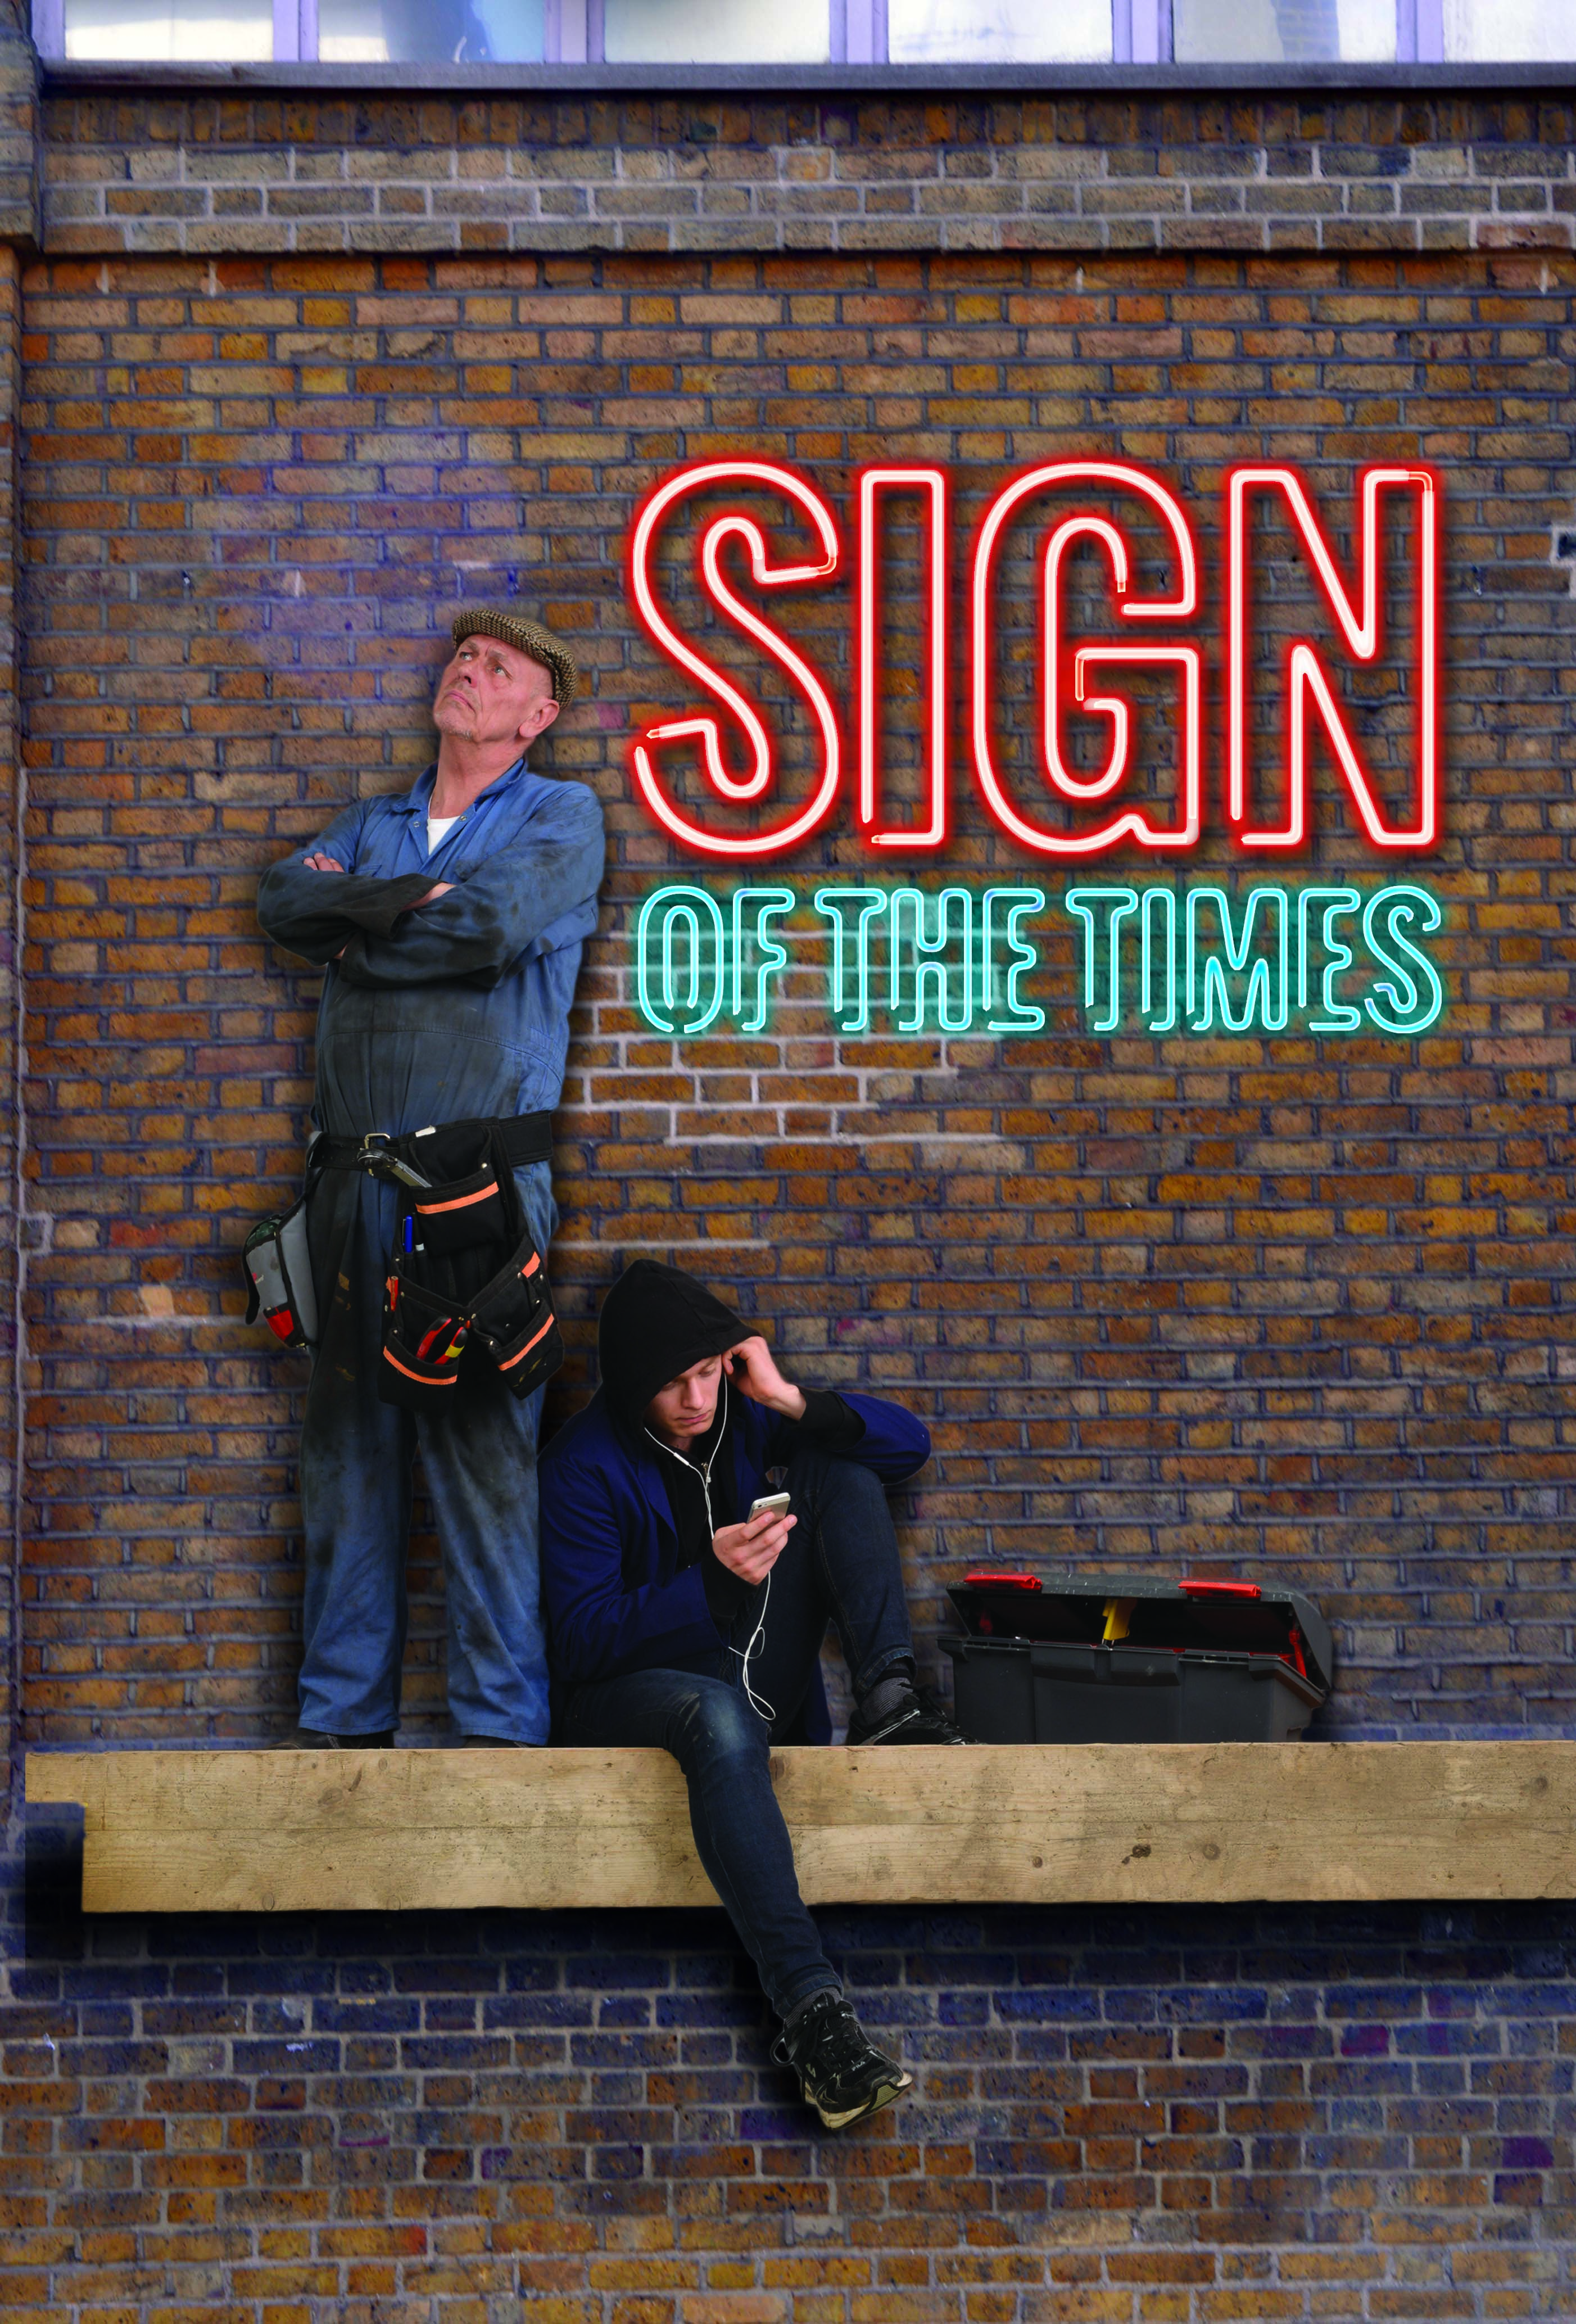 the signs and times of the Signs of the times is the leading brand for comprehensive sign-industry news, technical information and in-depth analysis since 1906 our mission is to educate and inspire signage and graphics professionals worldwide through award-winning editorial perspectives, technology updates, new product reviews, one-of-a-kind state of the industry reports, expert advice, graphics techniques and much more.